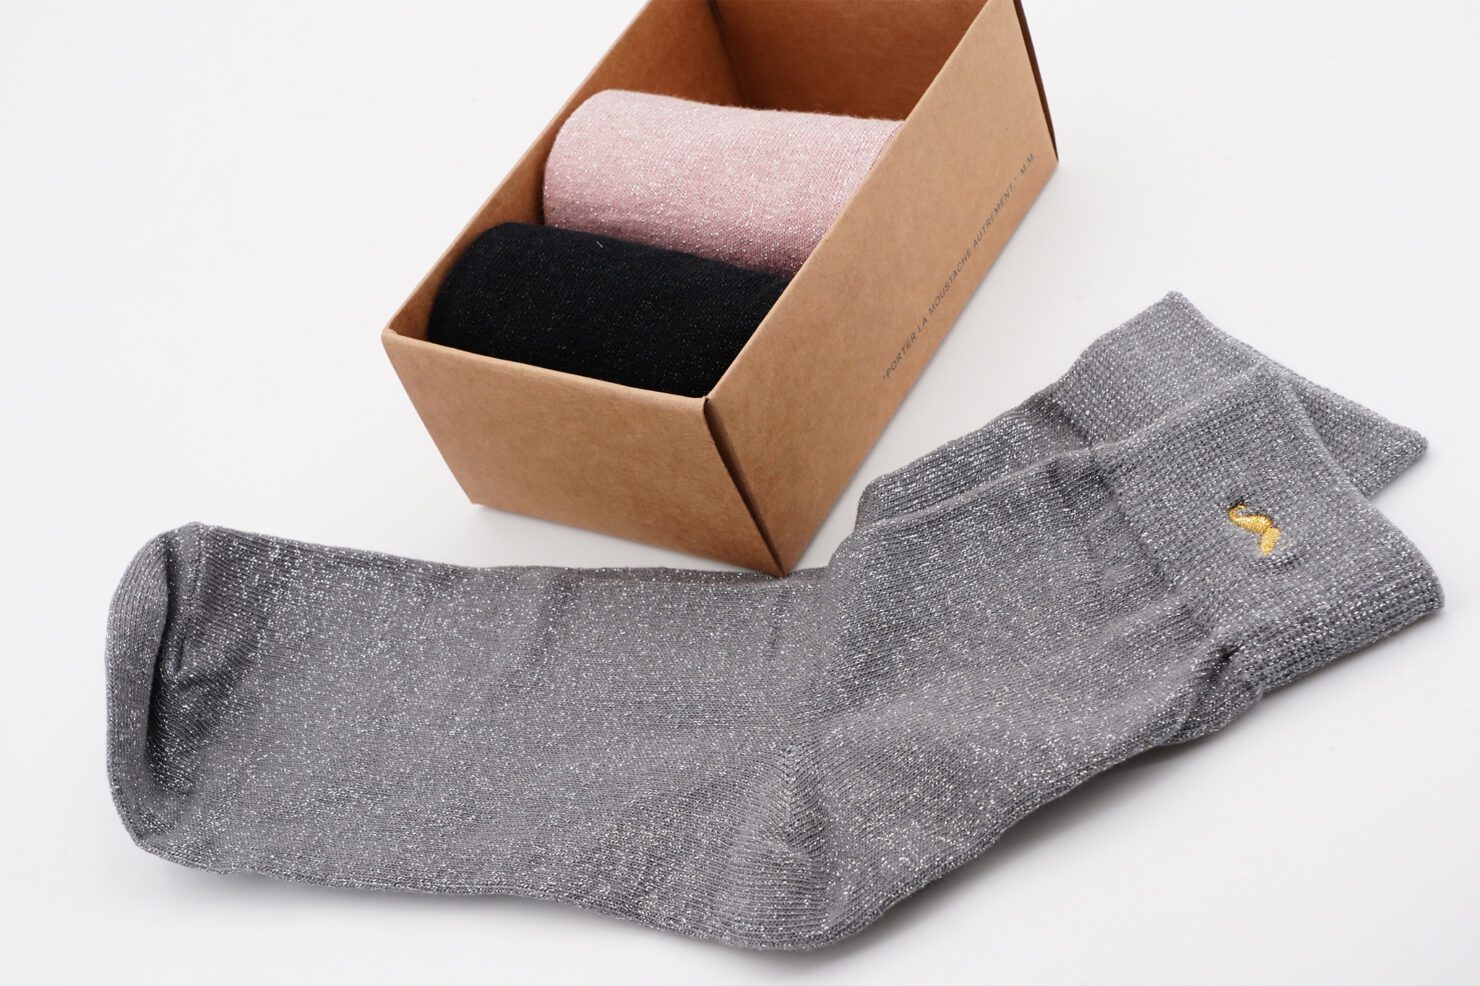 PACK OF 3 SOCKS - PAILLETTES SILVER PINK AND BLACK - M. MOUSTACHE